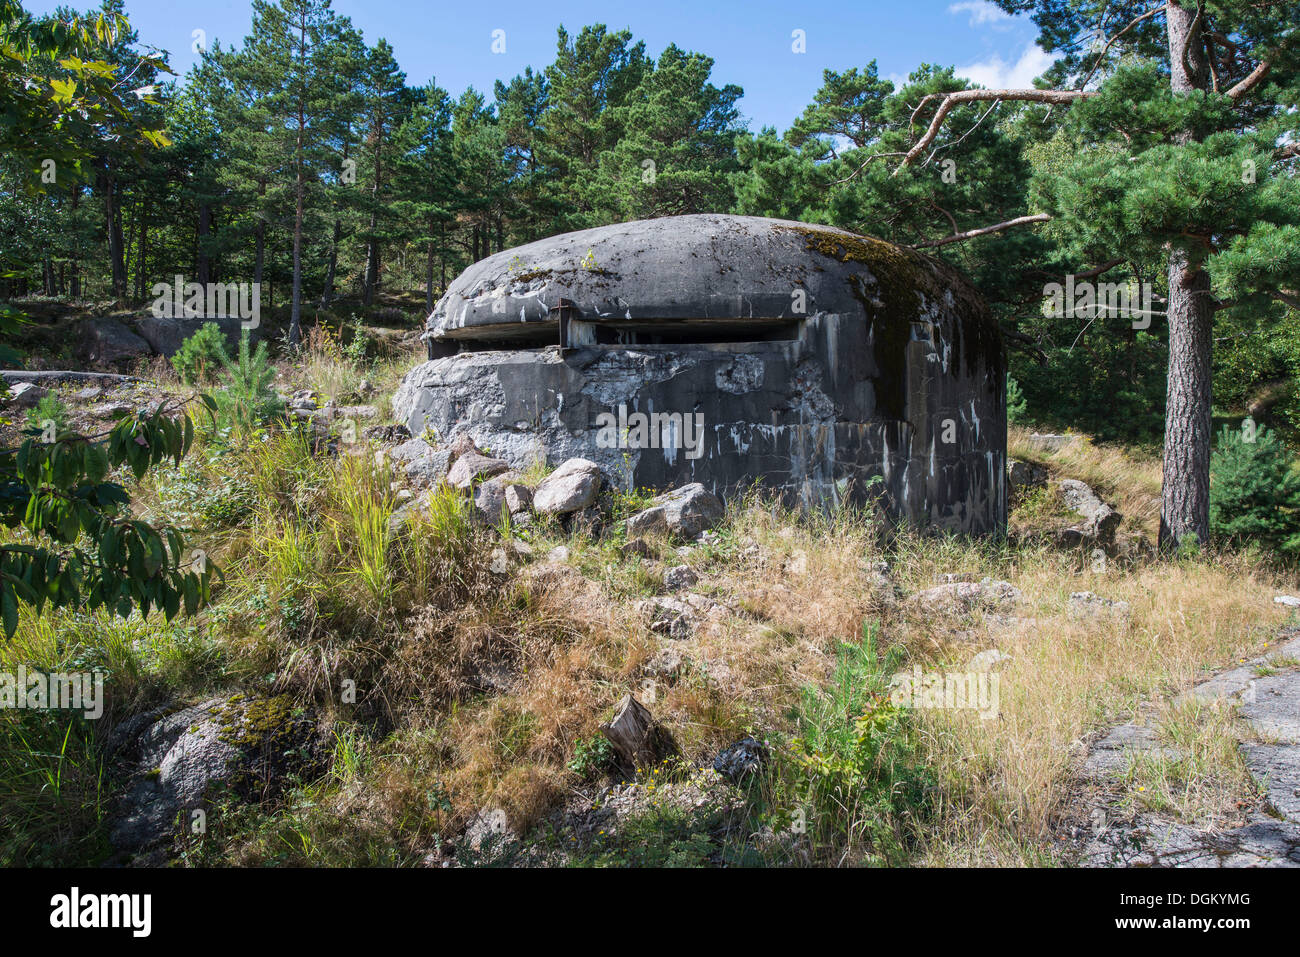 Old German bunker from the Second World War, in the woods, Kristiansand, Insel Odderøya, Vest-Agder, Southern Norway, Norway - Stock Image